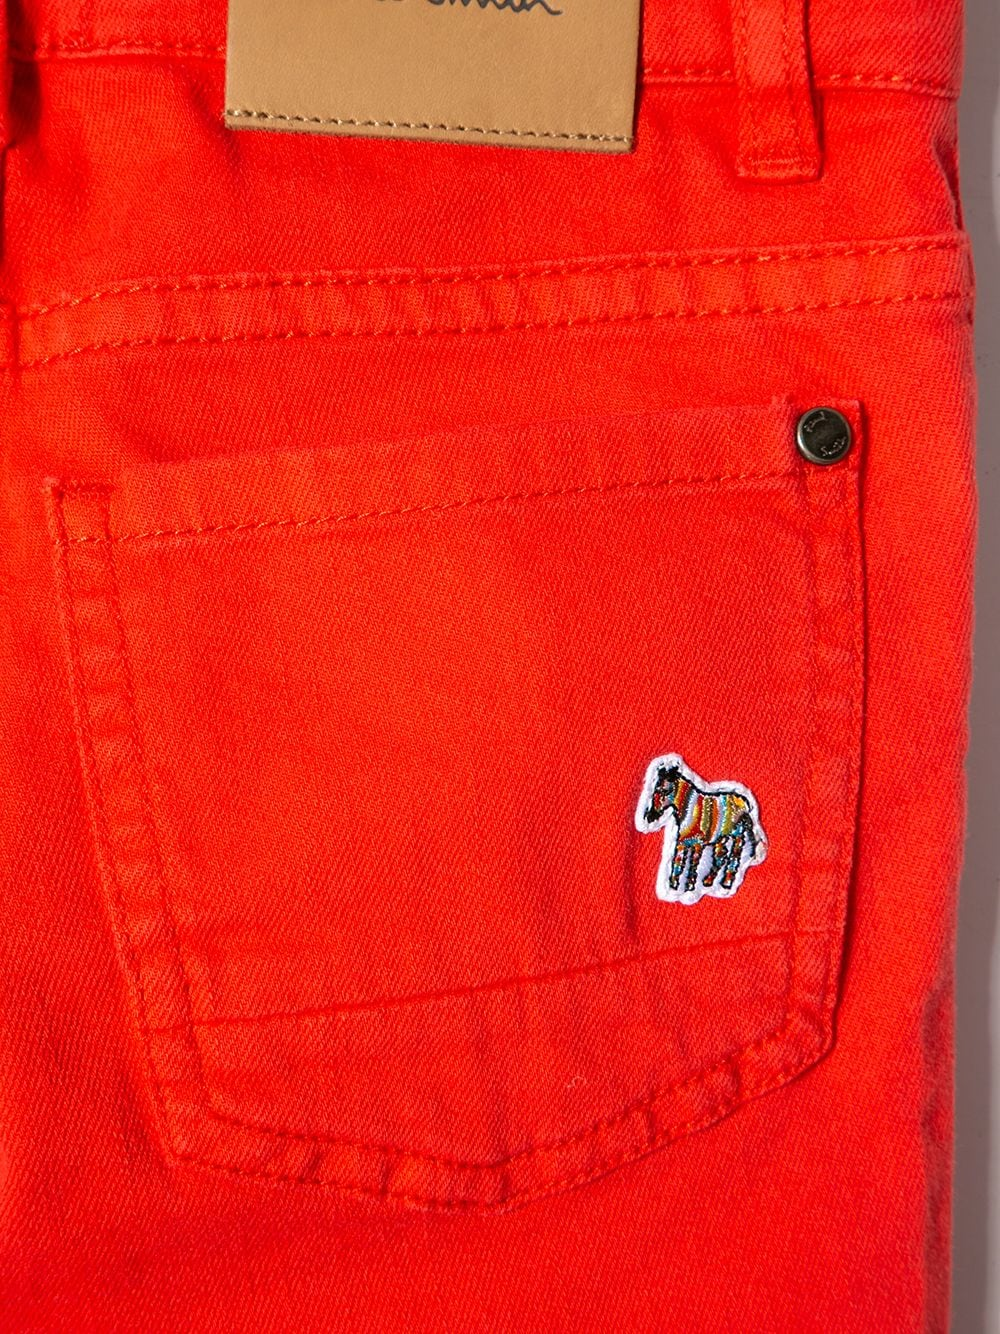 Paul Smith Junir Anatol Red Pants